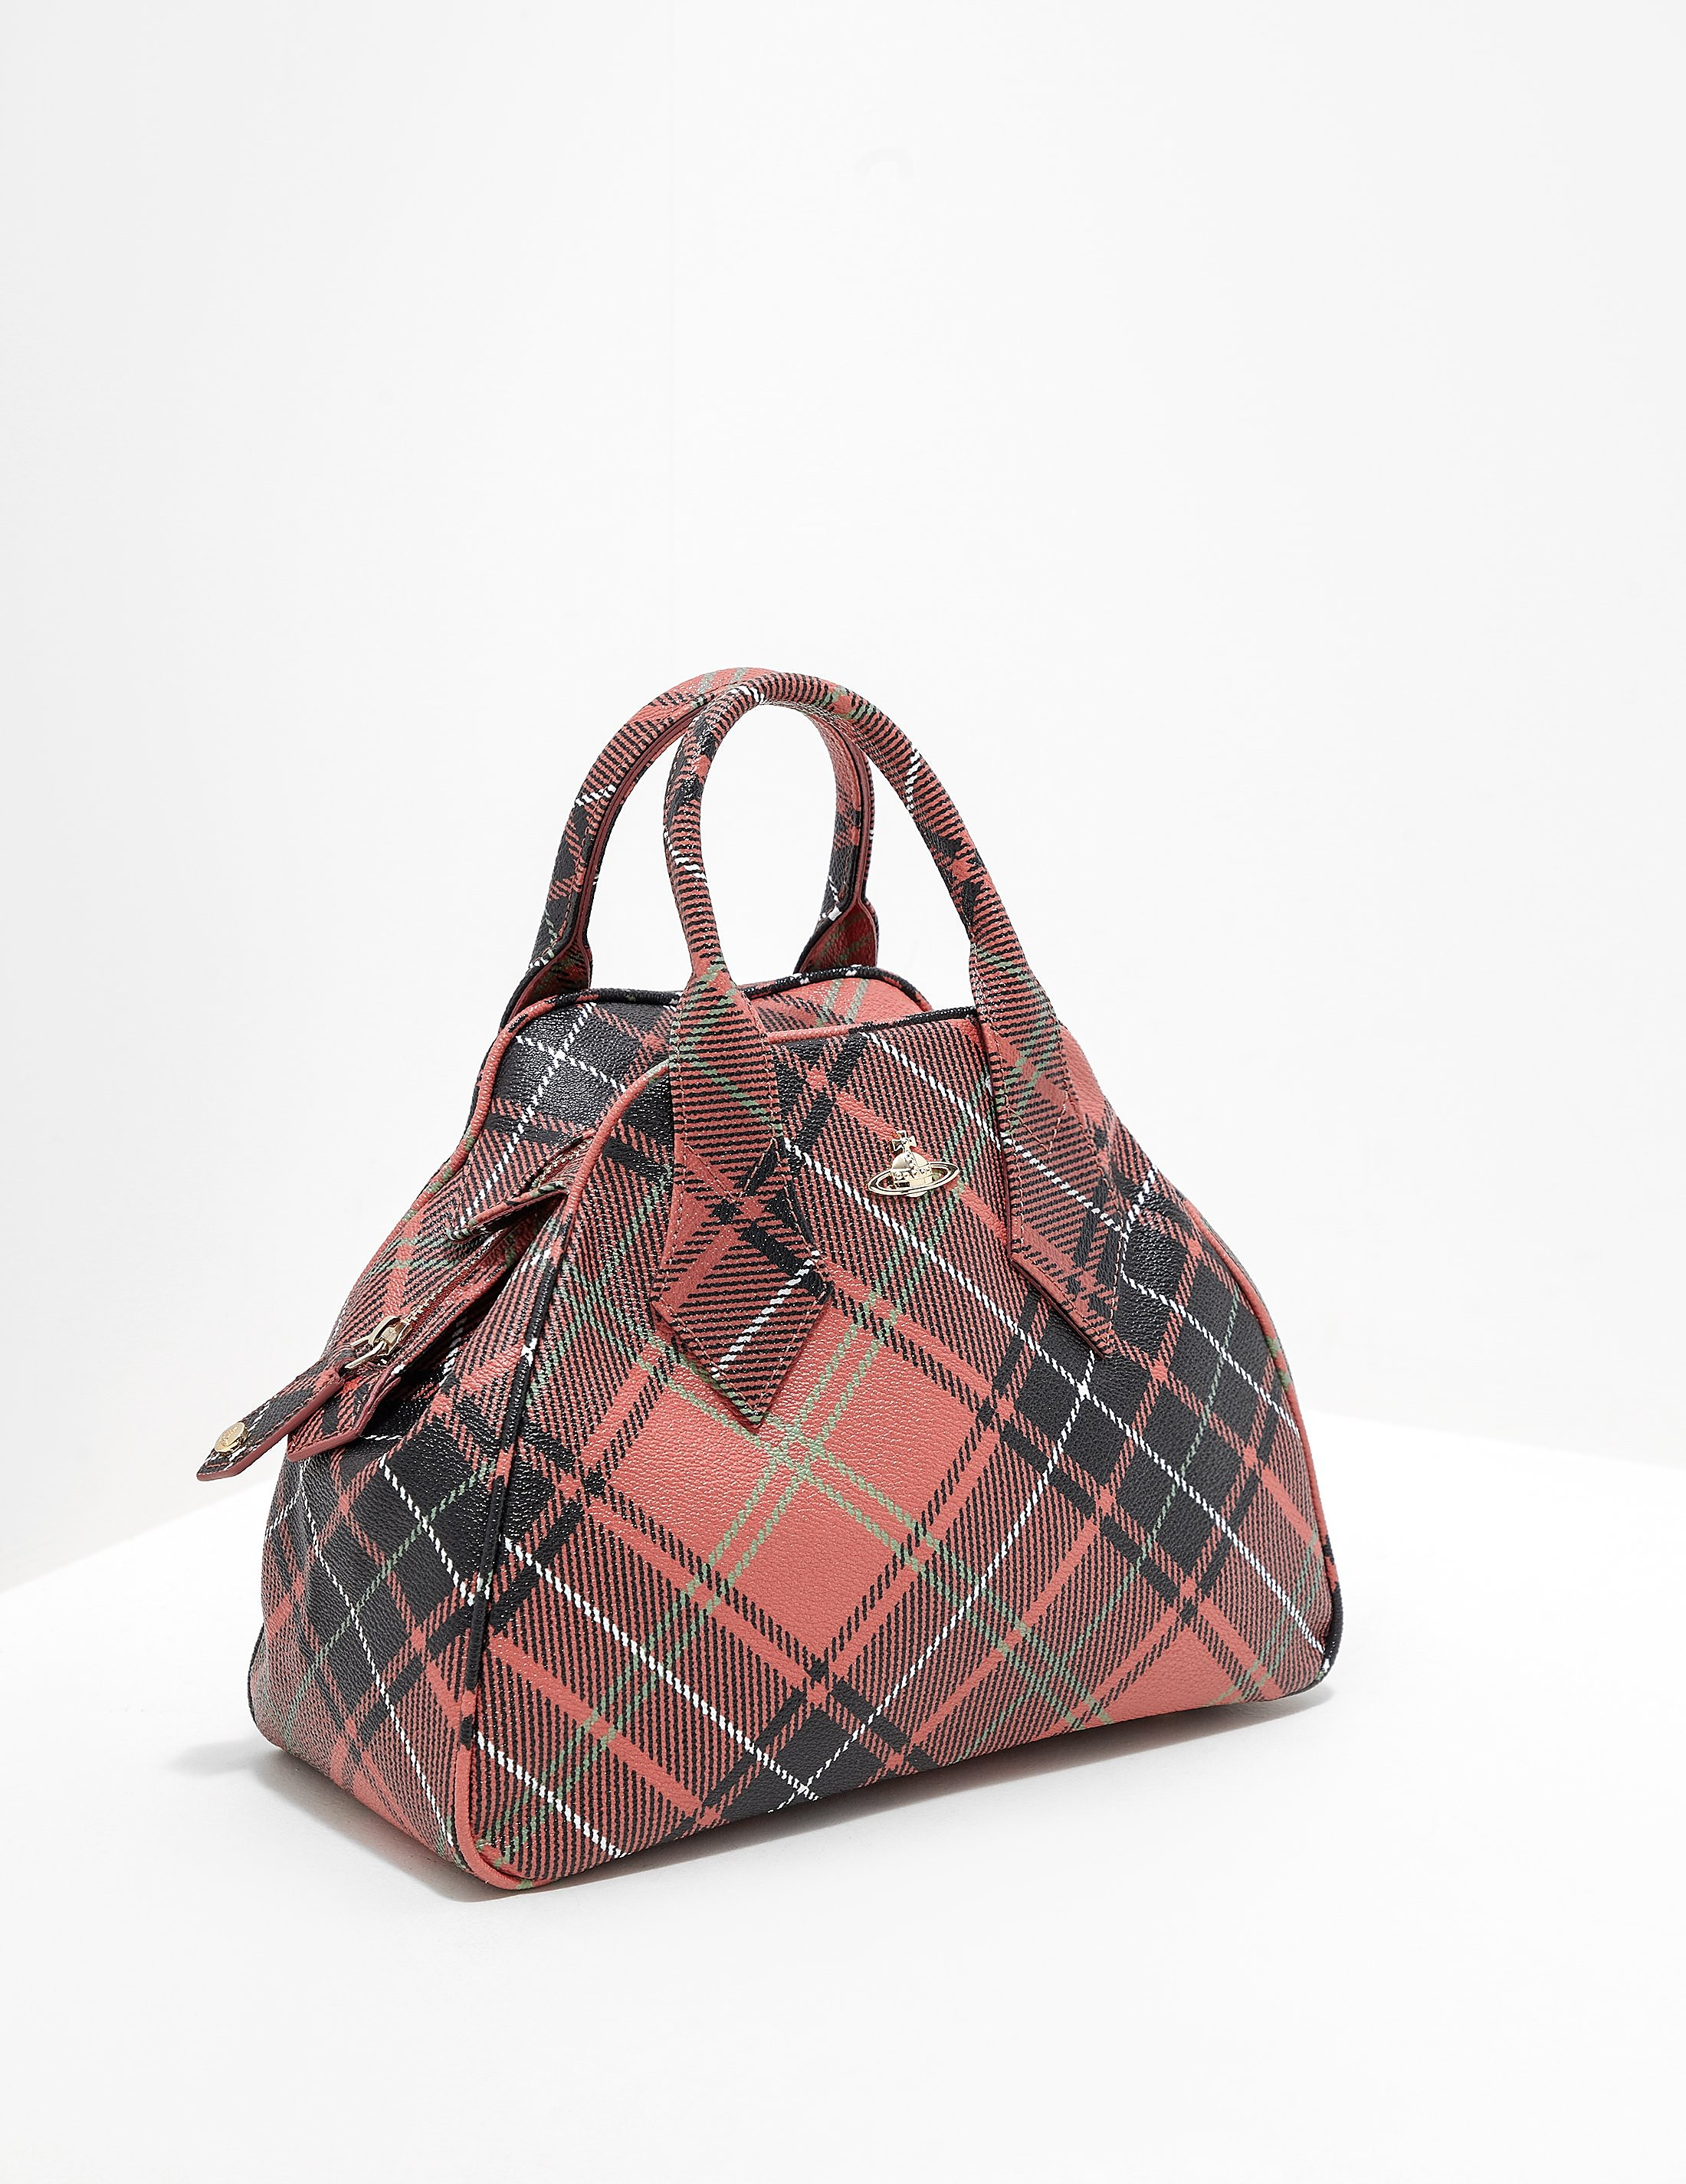 Vivienne Westwood Derby Medium Bag